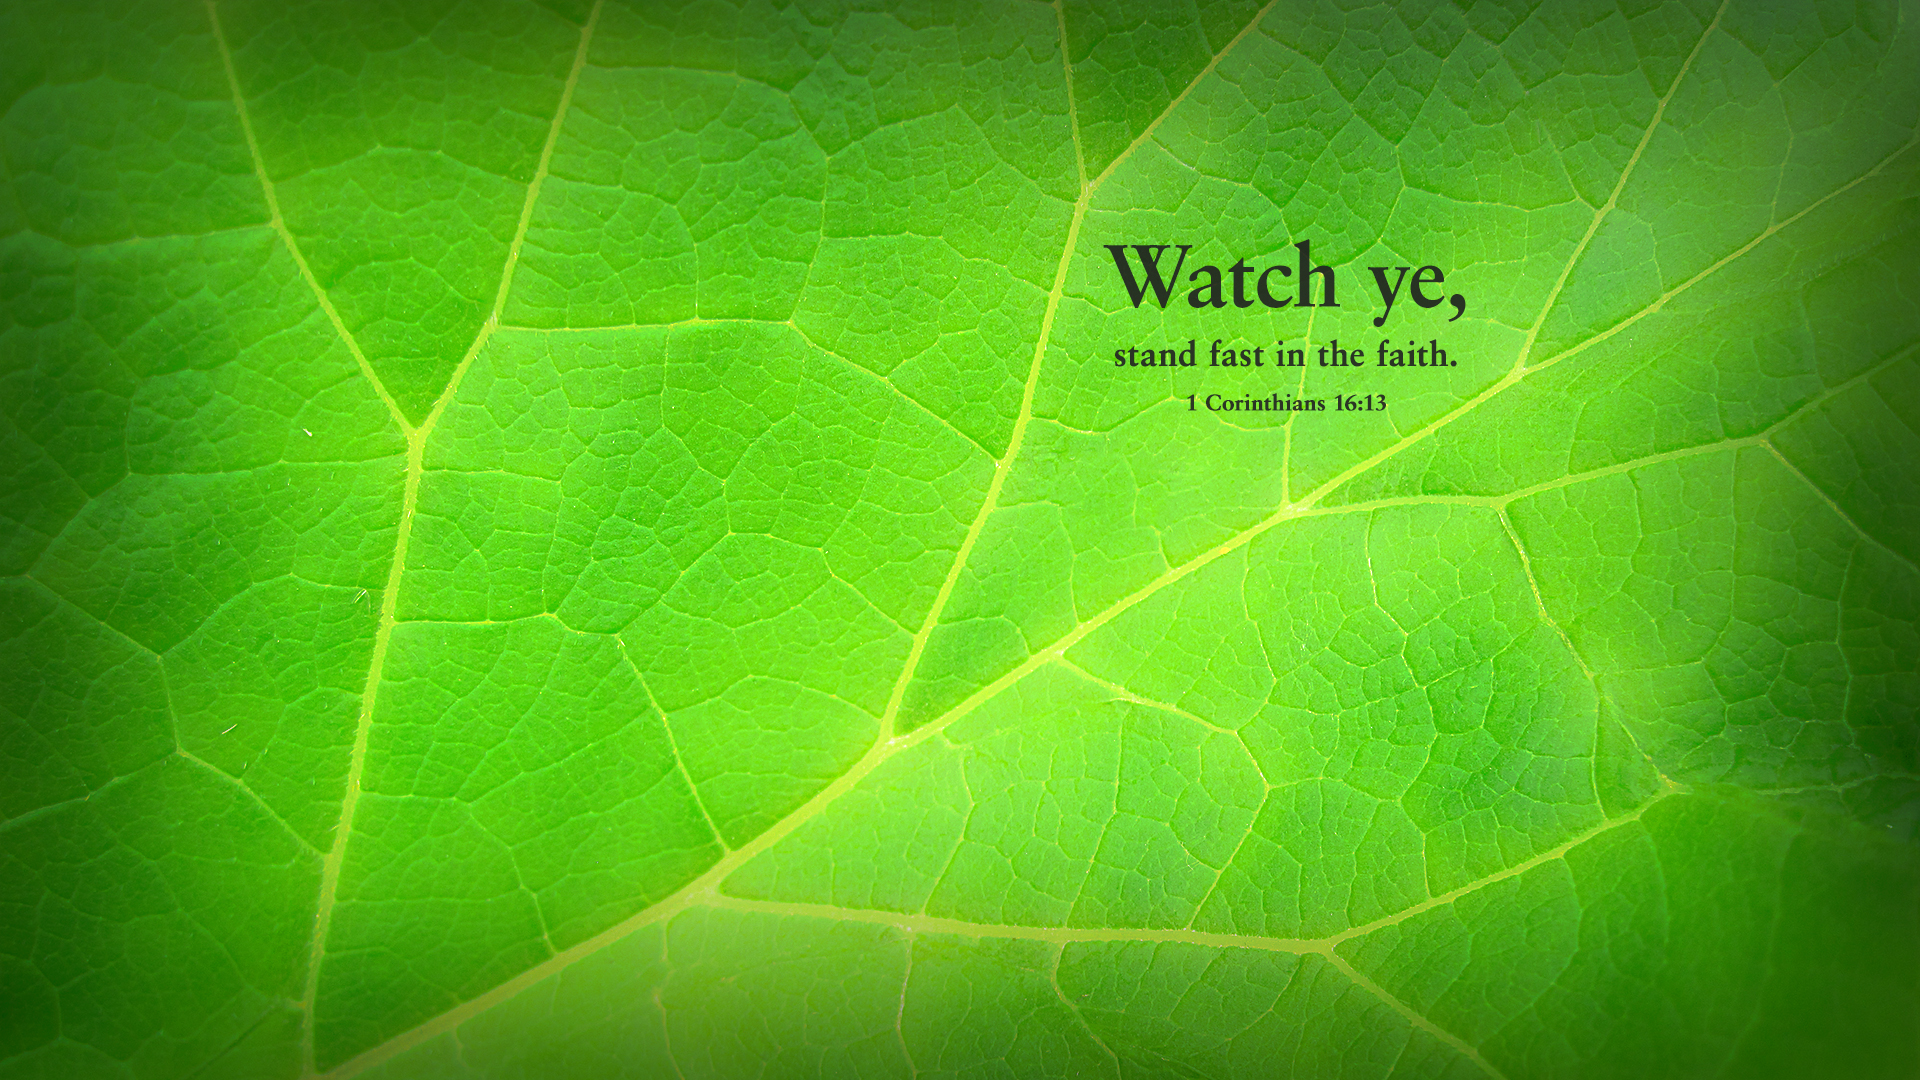 Green Leaf–1 Corinthians 16:13–Wallpaper